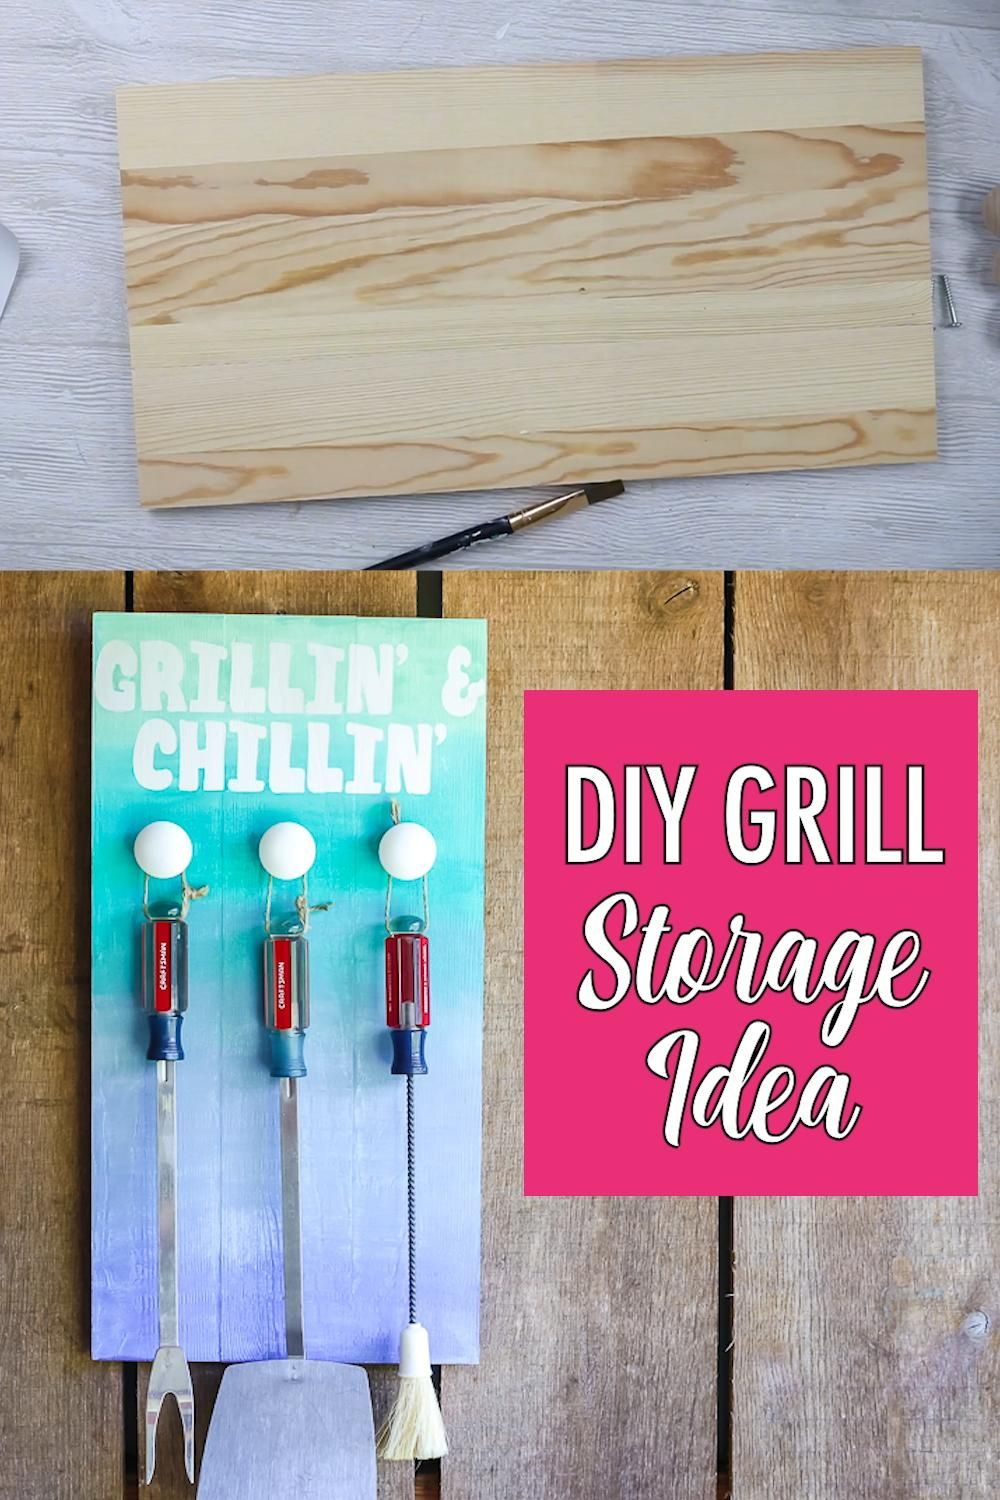 Diy Grill Storage With An Ombre Paint Technique Video Video In 2020 Diy Grill Ombre Paint Cricut Projects Vinyl